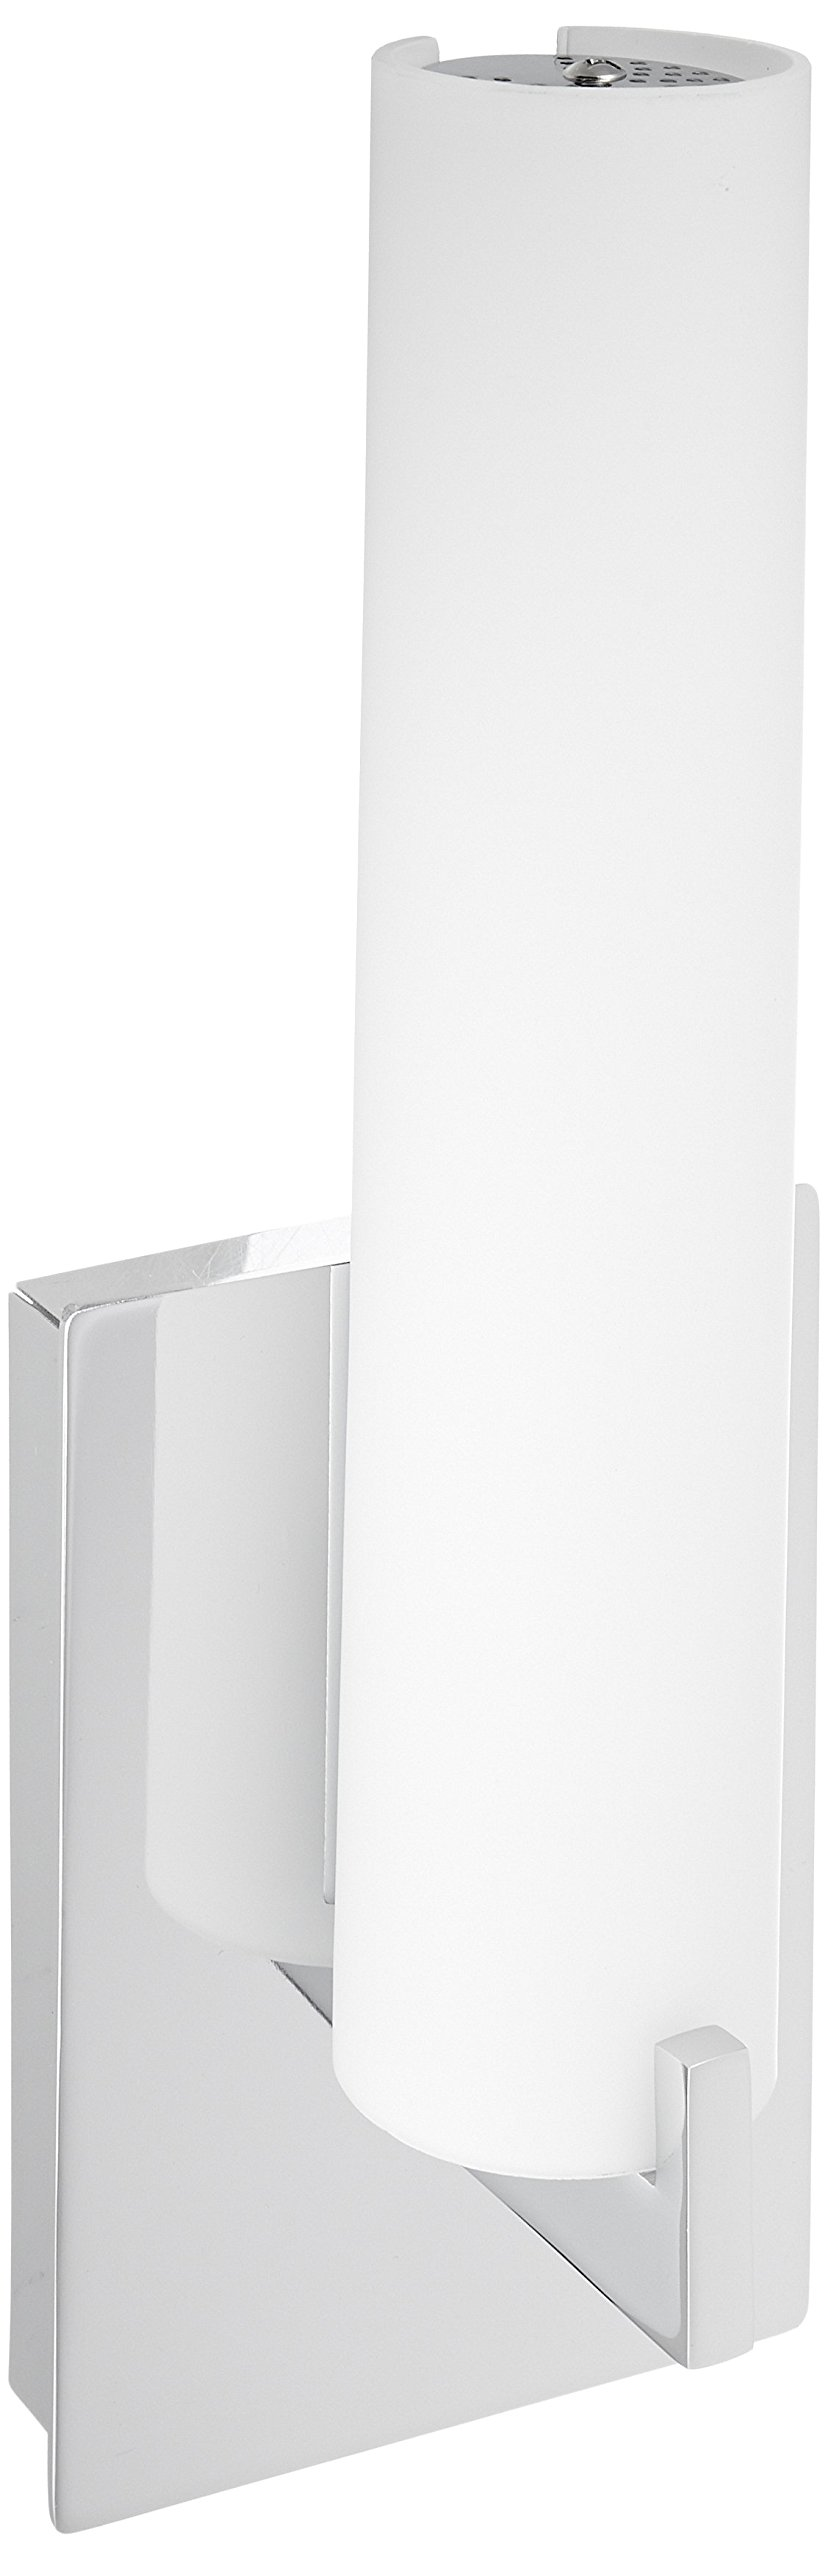 George Kovacs P5040-084-L, Tube, LED Wall Sconce, Brushed Nickel by Kovacs